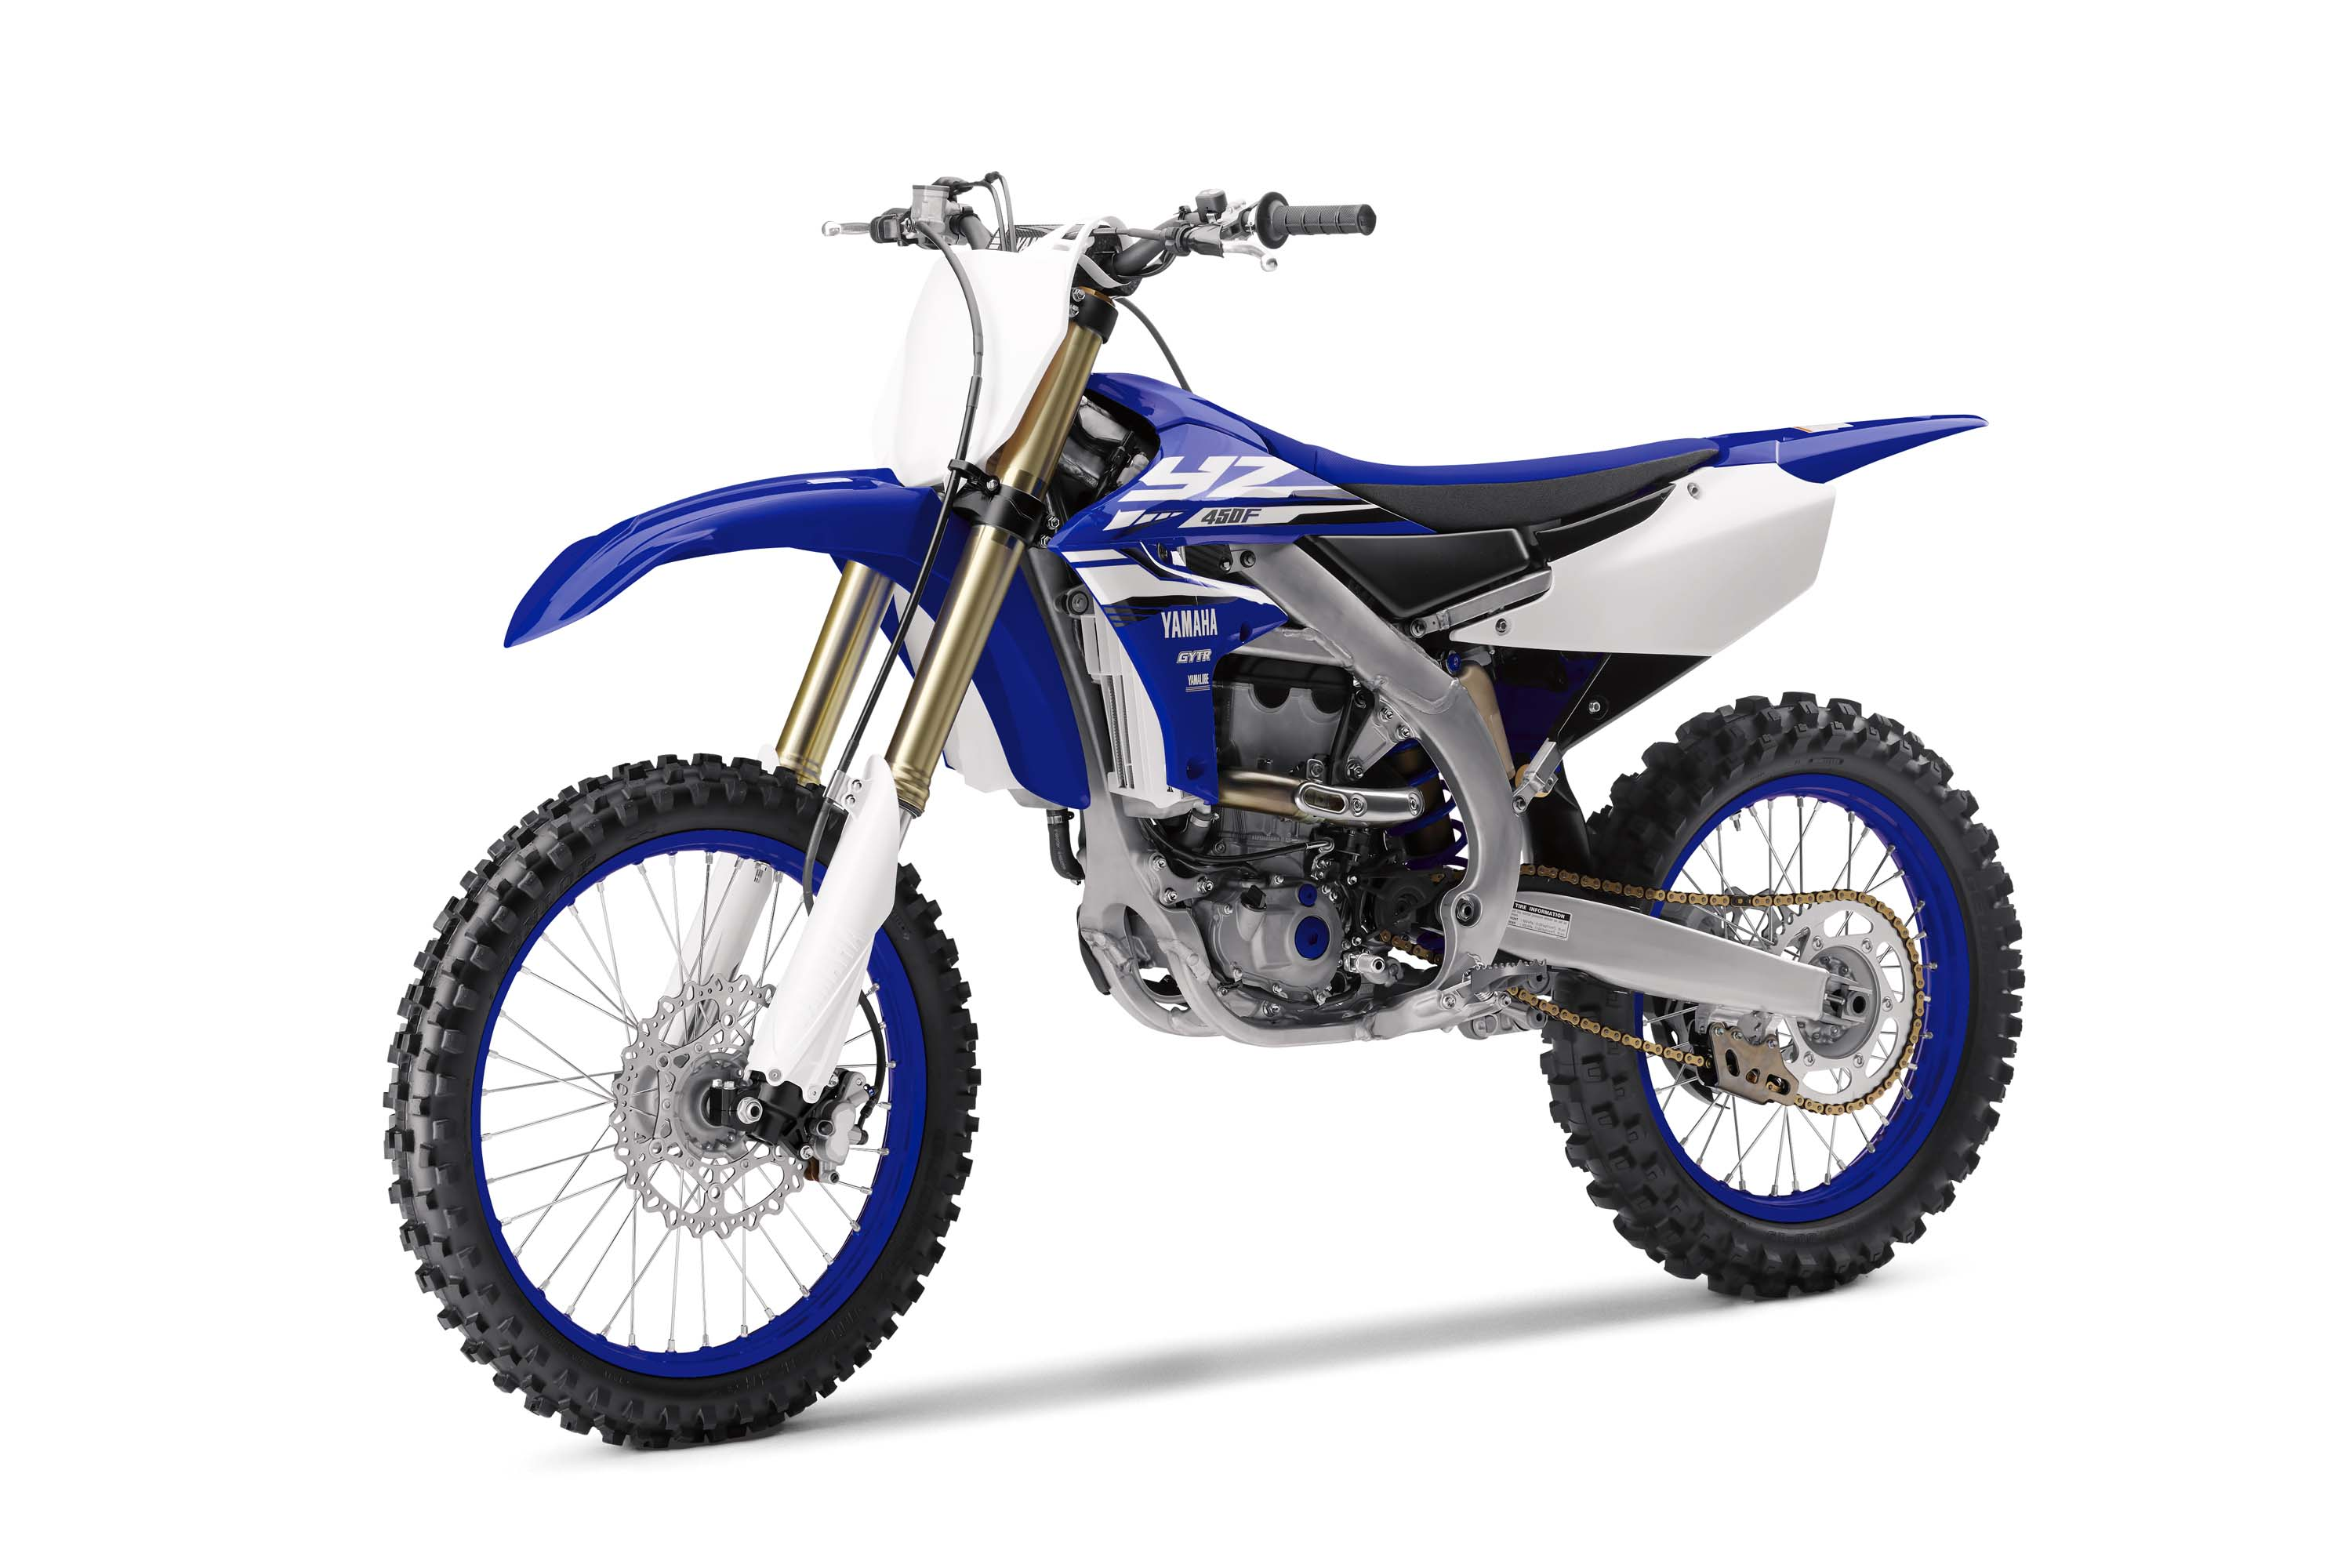 Terrific 2018 Yamaha Yz450F Debuts With Tuner App Asphalt Rubber Ocoug Best Dining Table And Chair Ideas Images Ocougorg